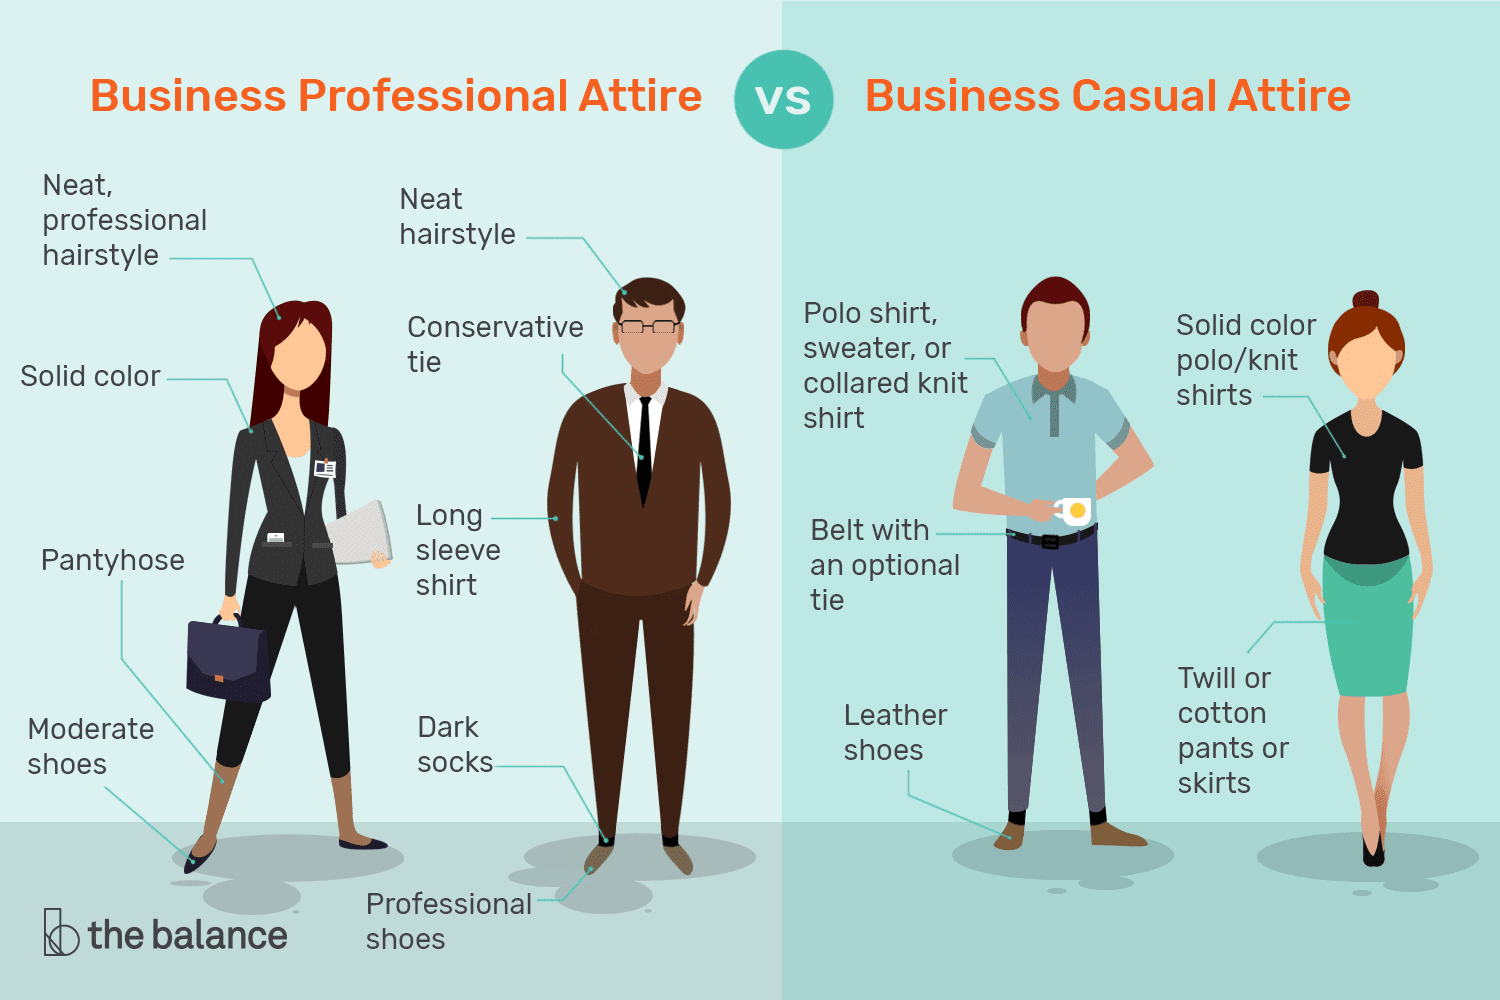 a3c981a0cf5 Business Professional Attire vs. Business Casual Attire